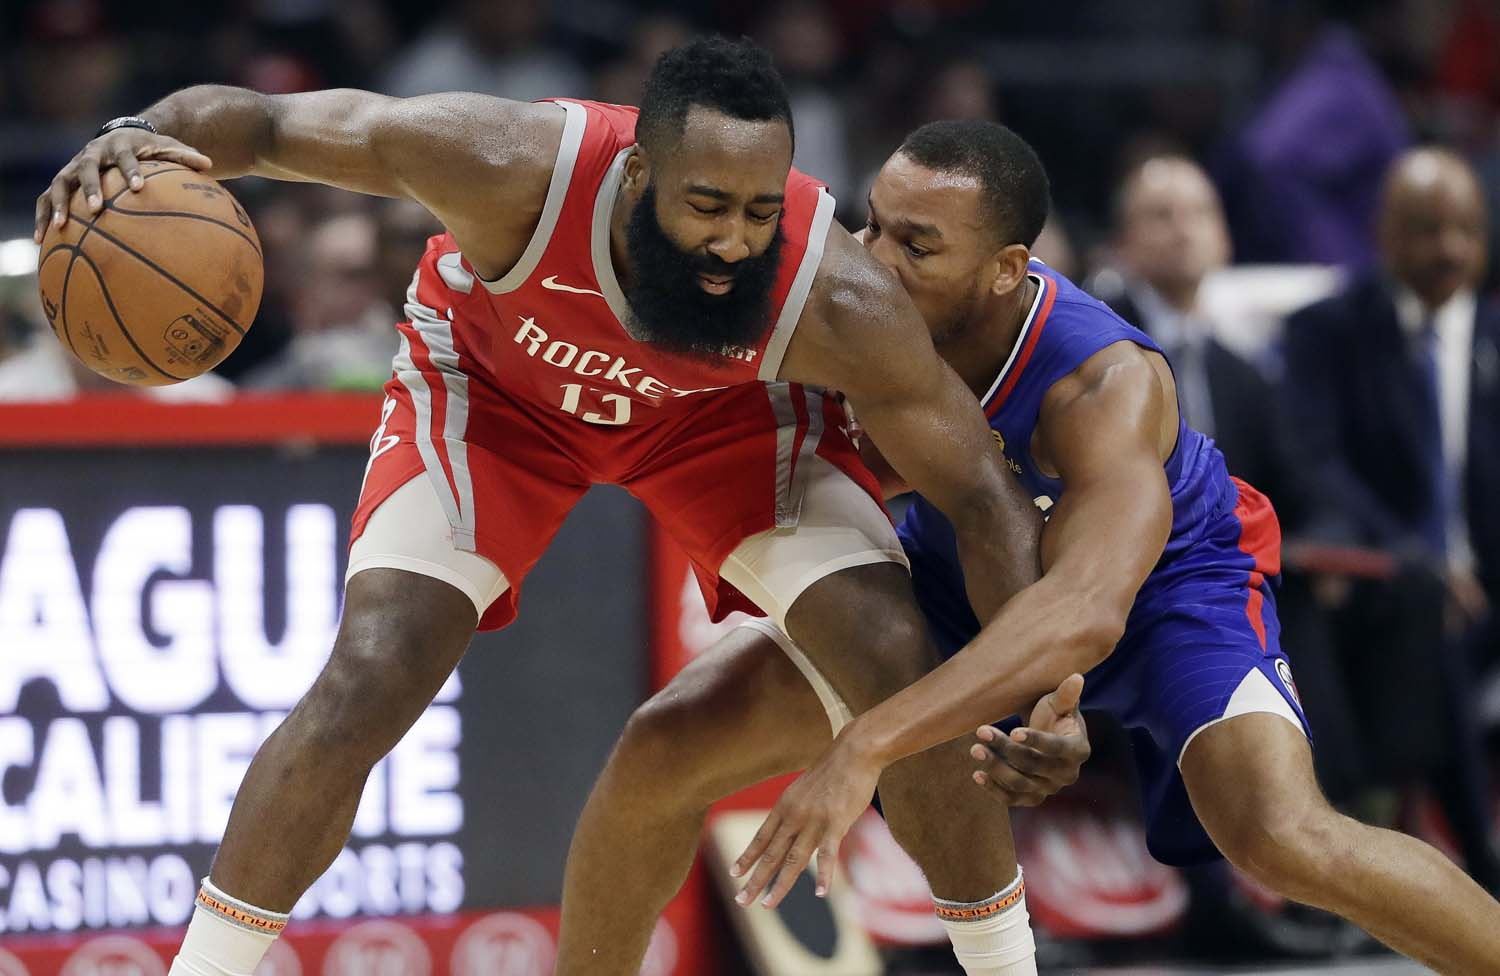 Houston Rockets' James Harden (13) is defended by Los Angeles Clippers' Avery Bradley during the first half of an NBA basketball game on Sunday.